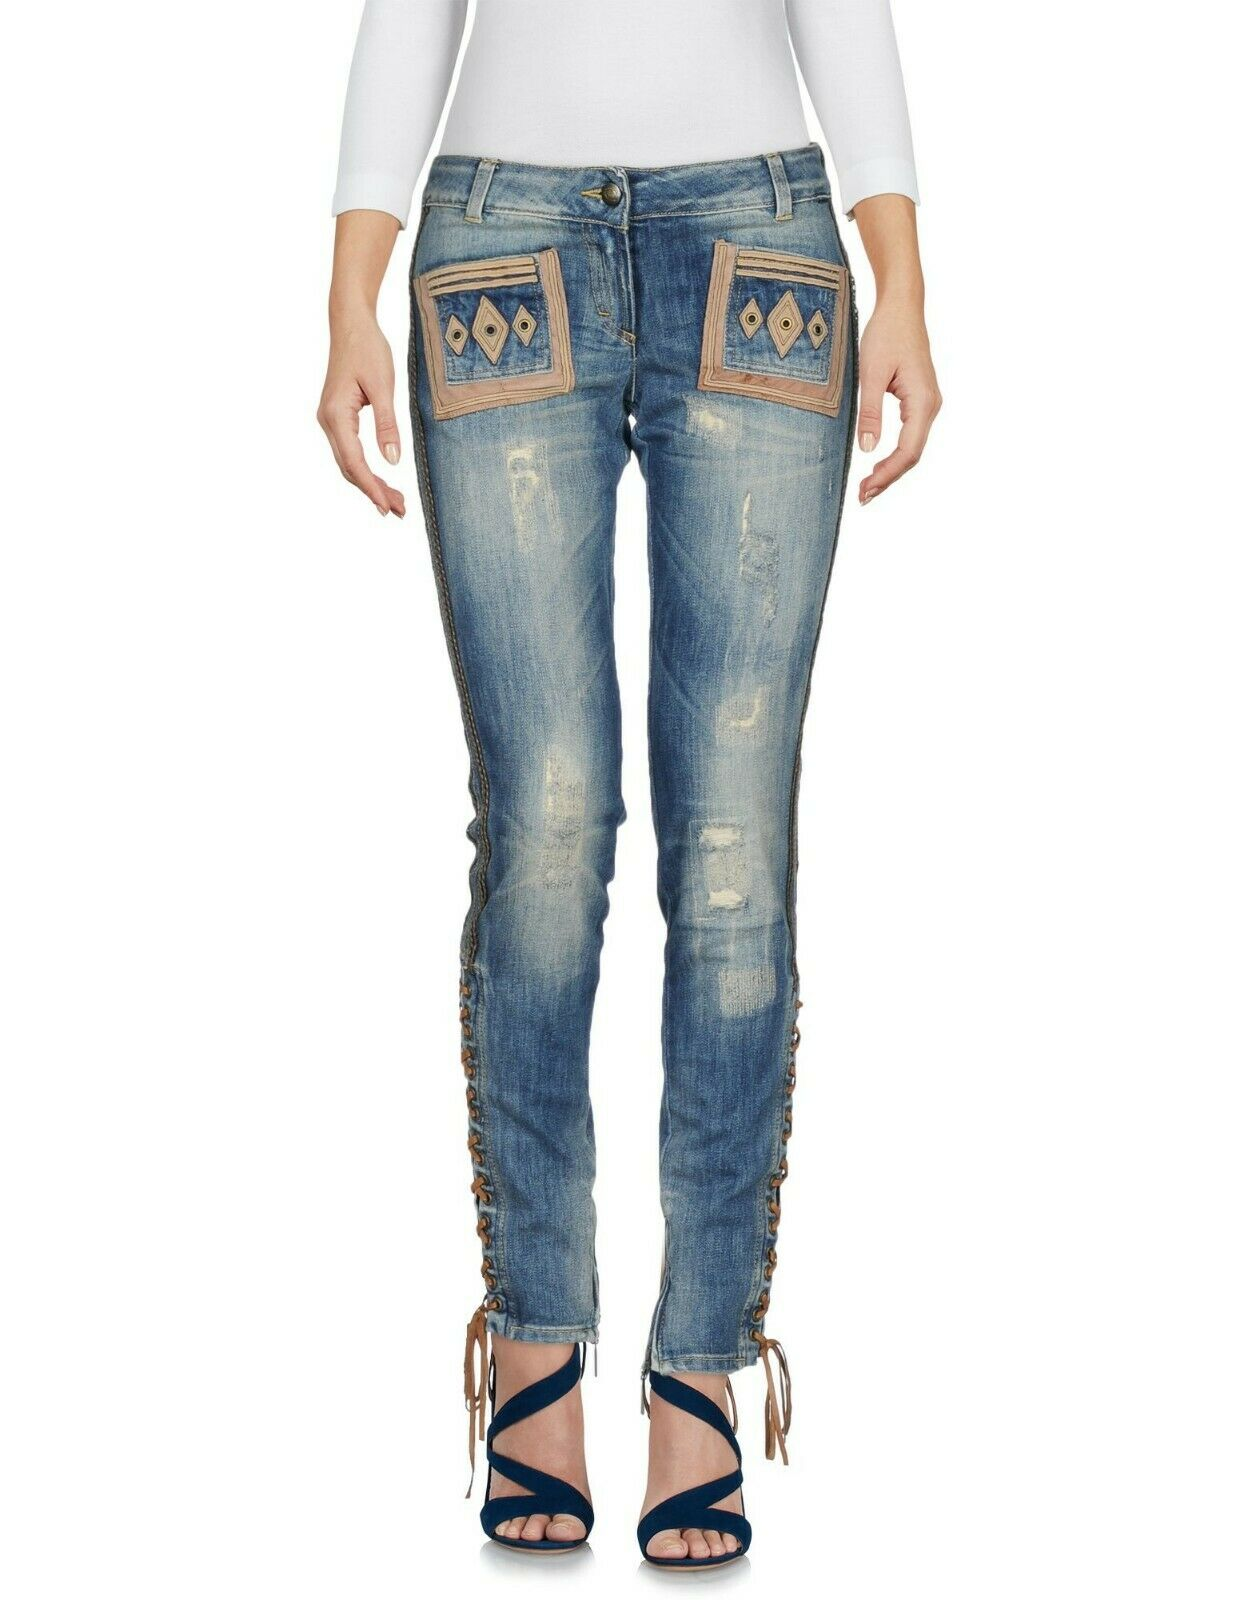 16a0b631d5e99 NWT JUST CAVALLI leather lace up jeans denim pants 29 M sz trim ...